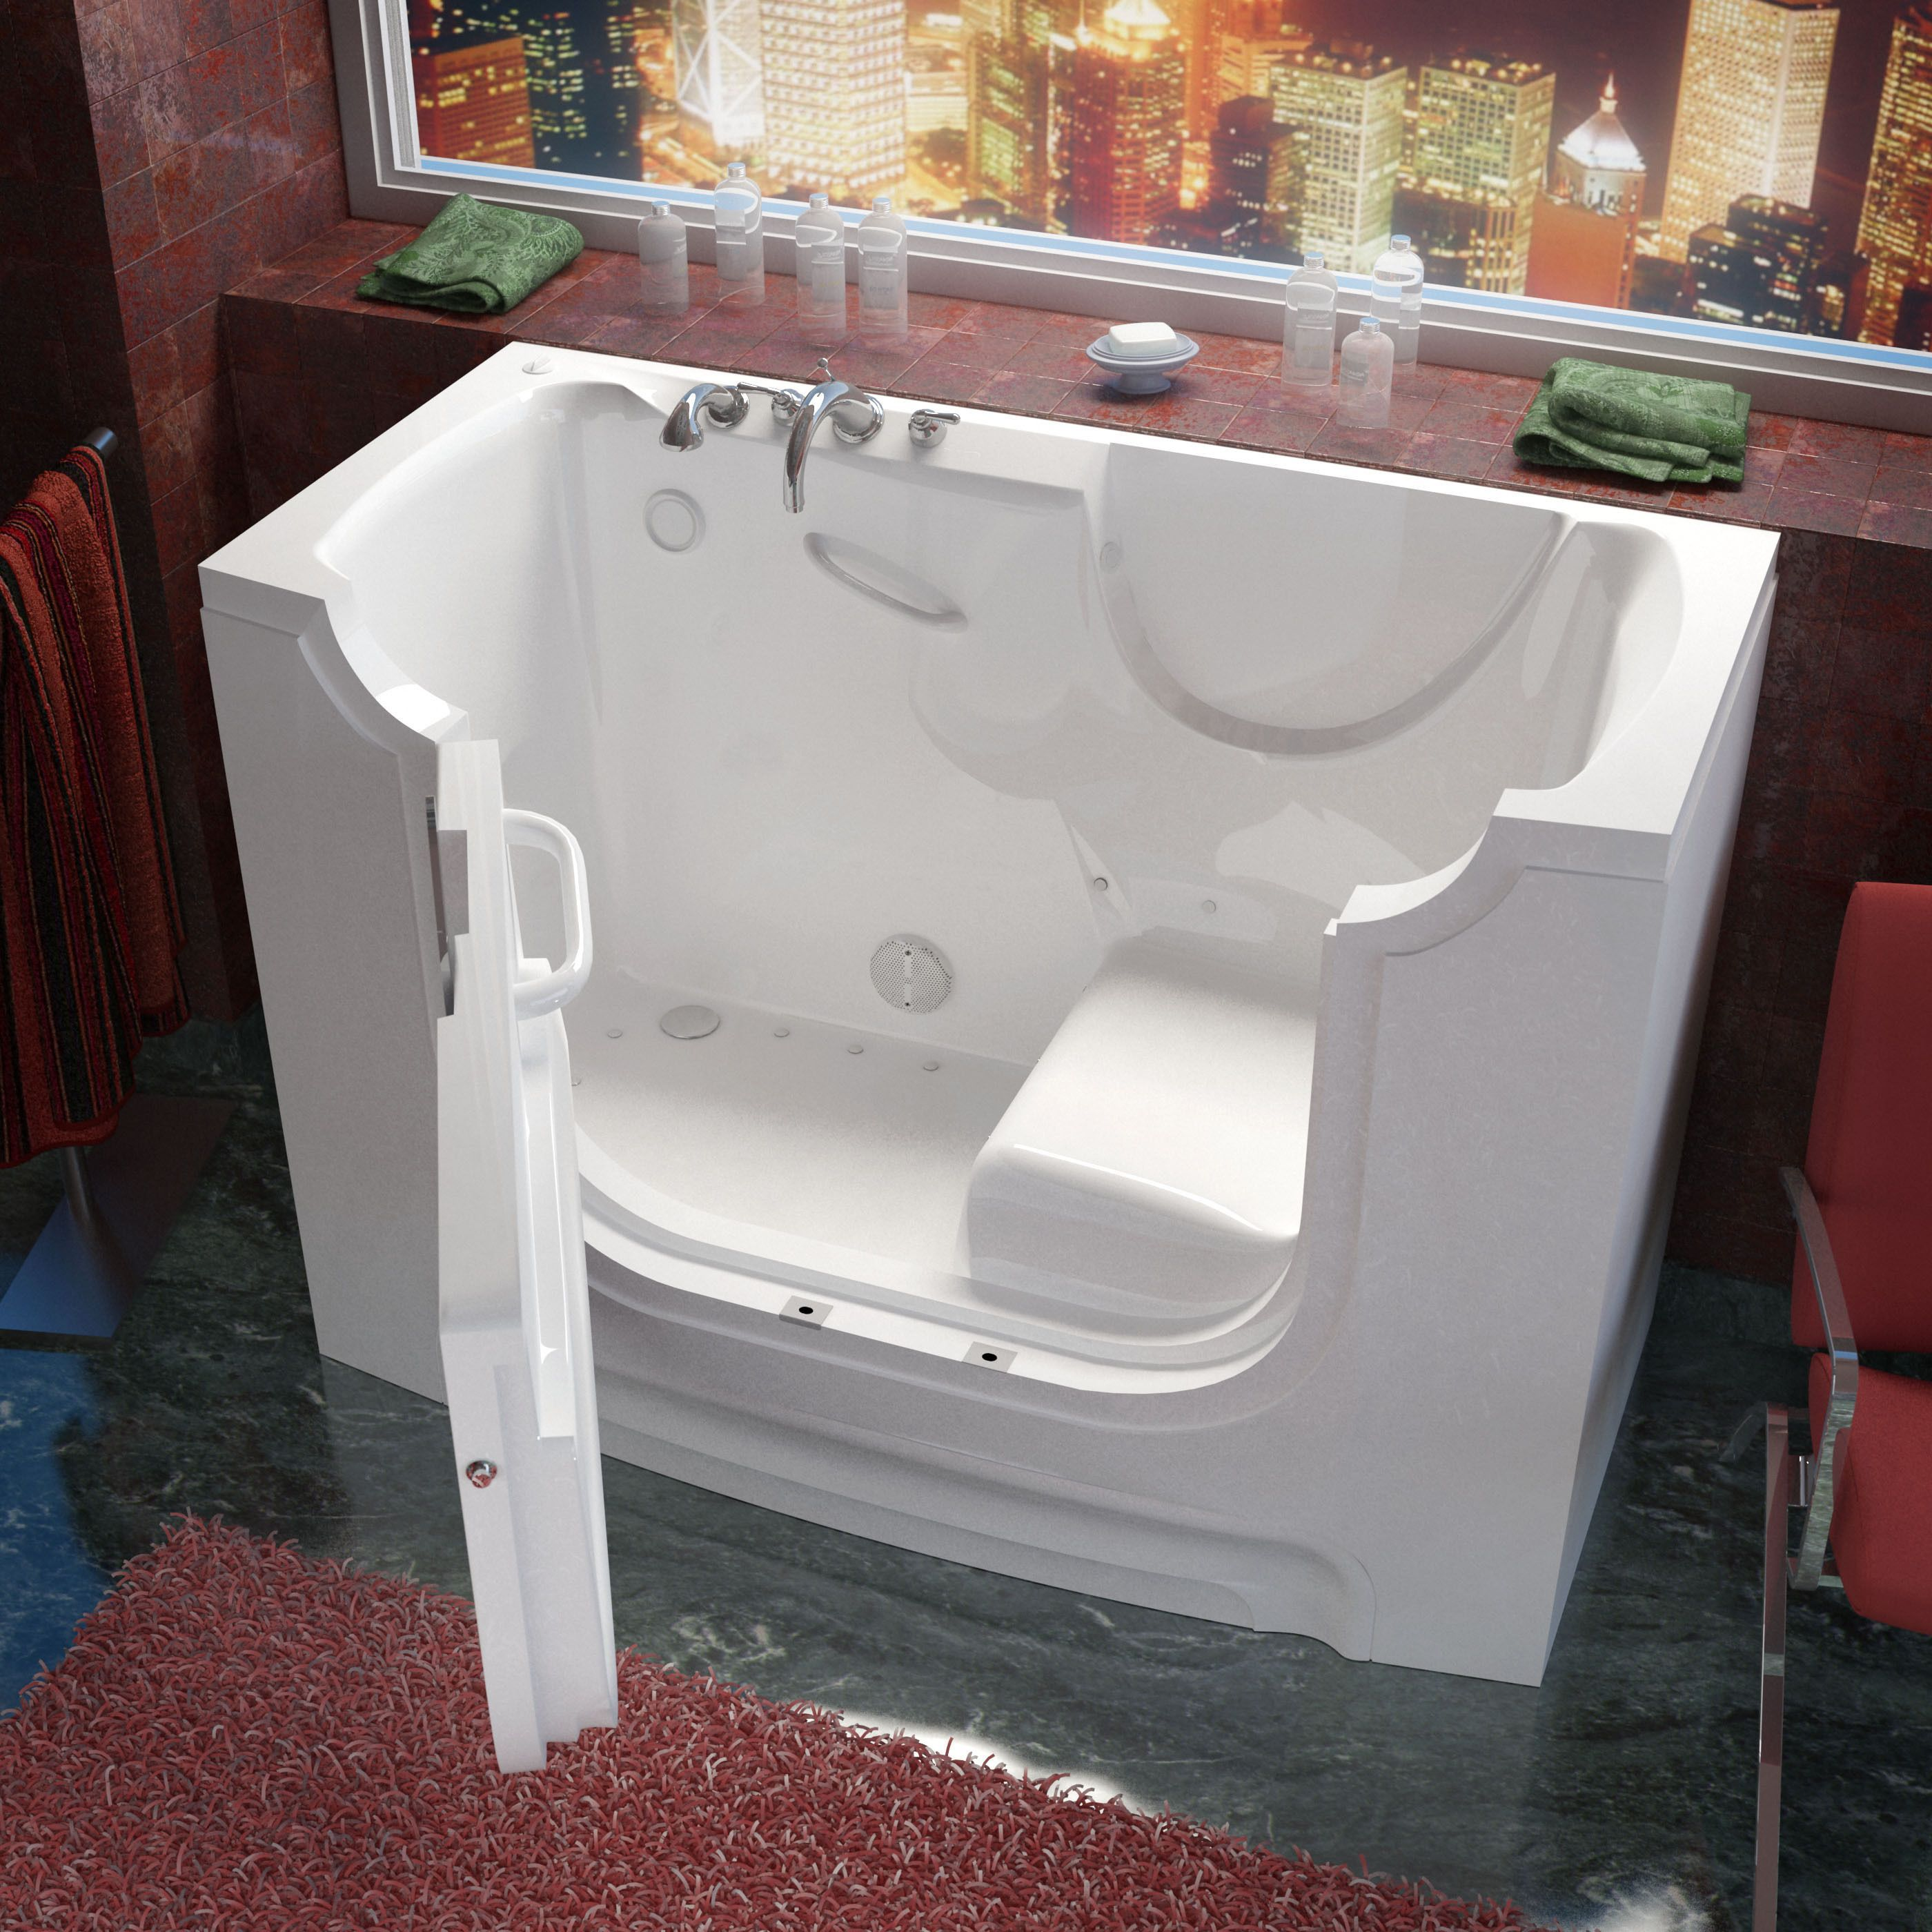 MediTub Wheelchair Accessible 30x60-inch Left Drain White Air Jetted ...